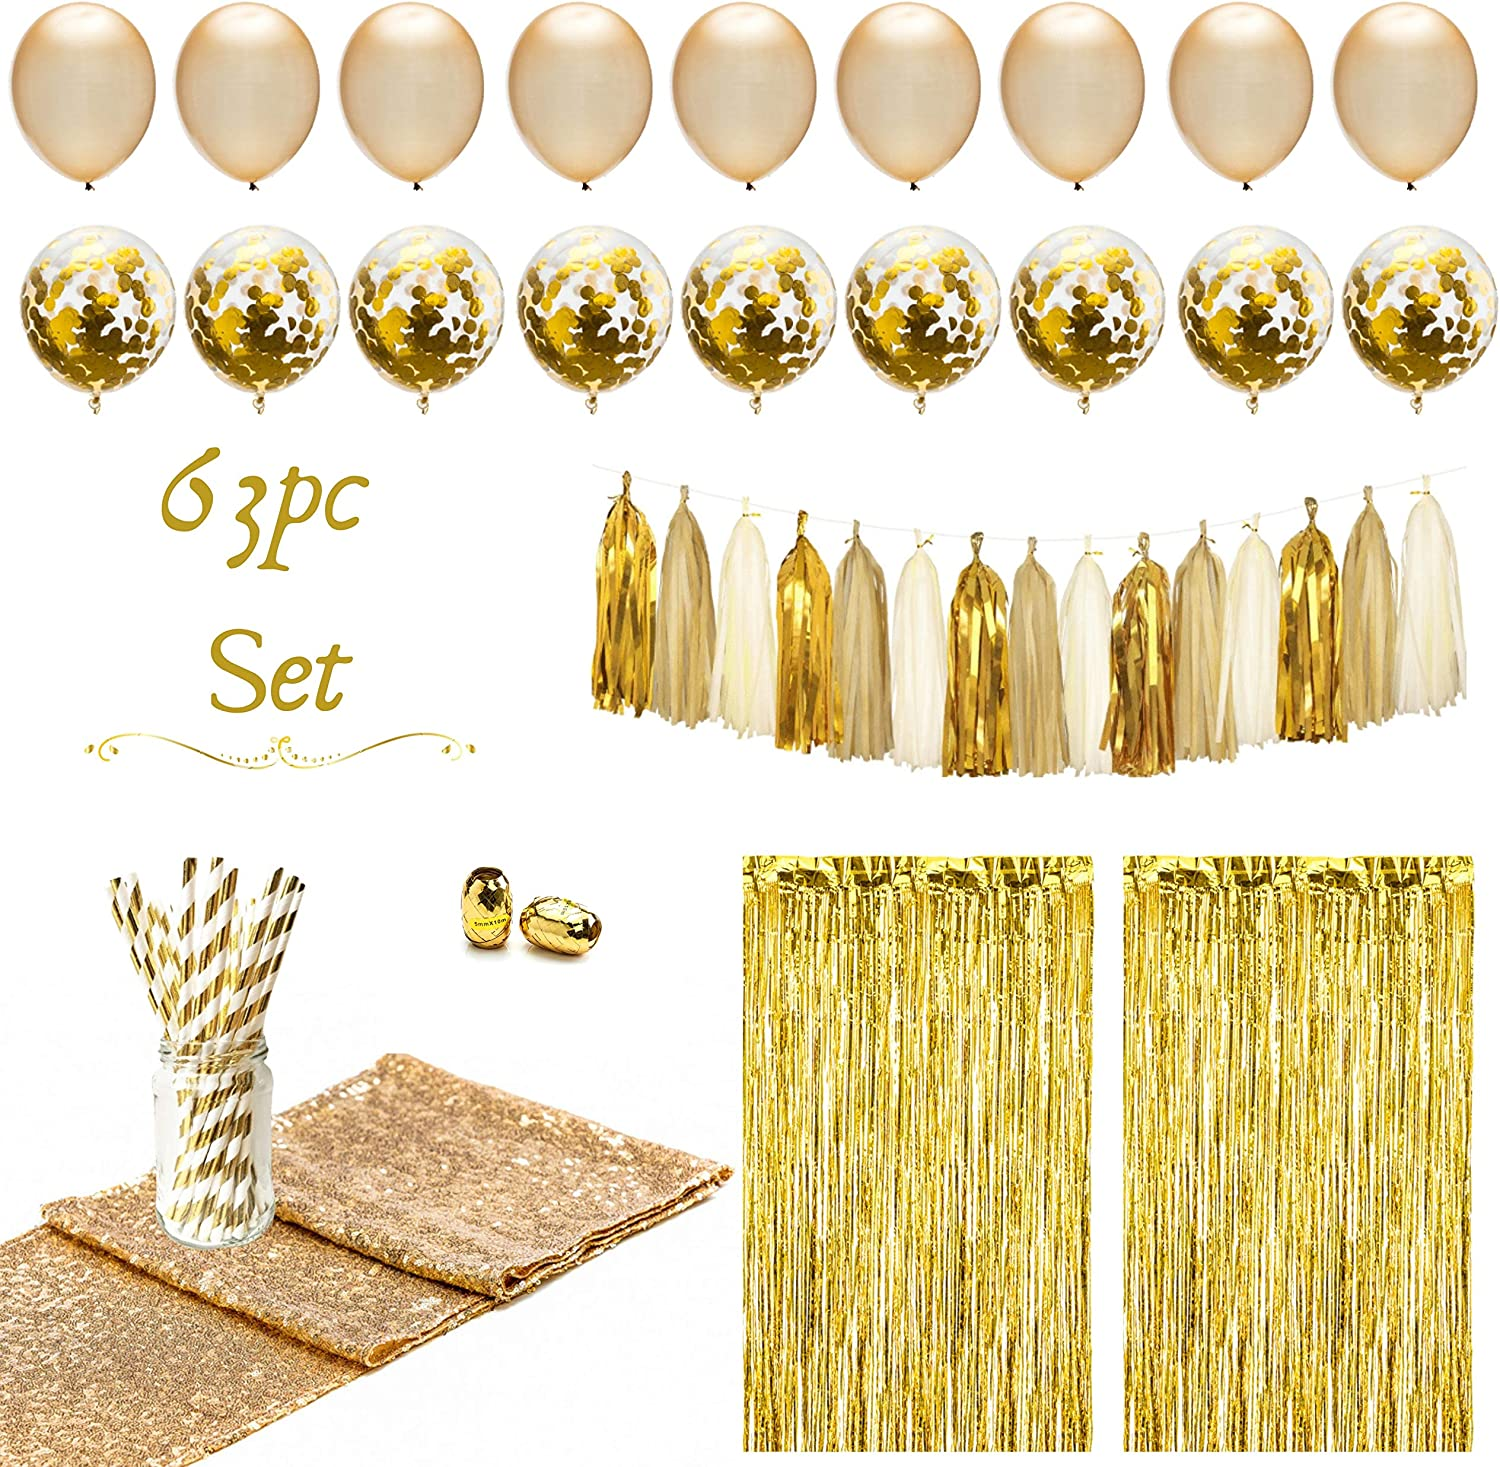 Artunique 63pc Gold Party Decorations | Gold Party Supplies for Bachelorette Party Decorations and Birthday Party Decorations With Gold Balloons, Tassle Garland, Fringe Curtains, Table Runner, Straws